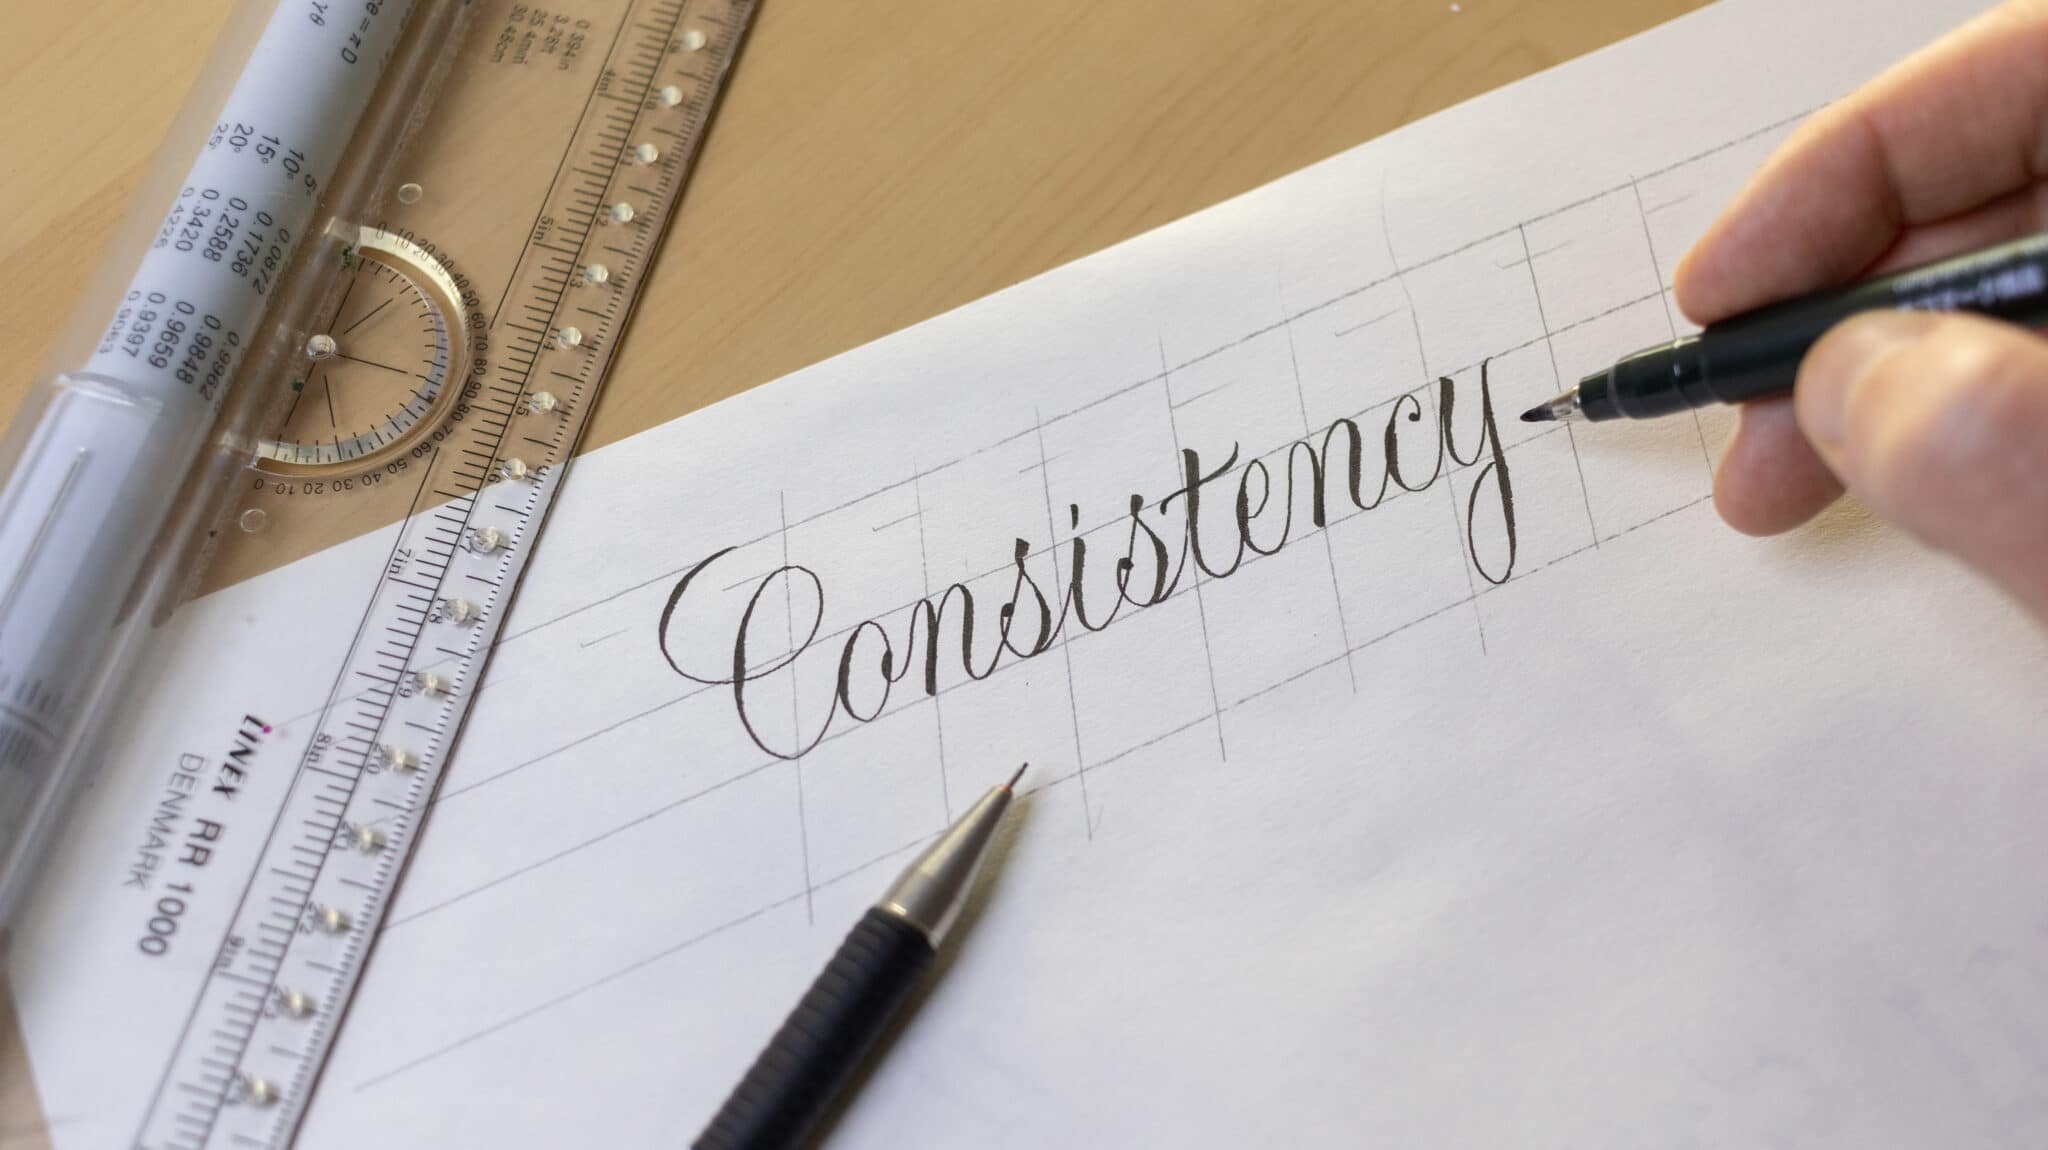 How To Make Calligraphy Guidelines Image 18 - Lettering Daily